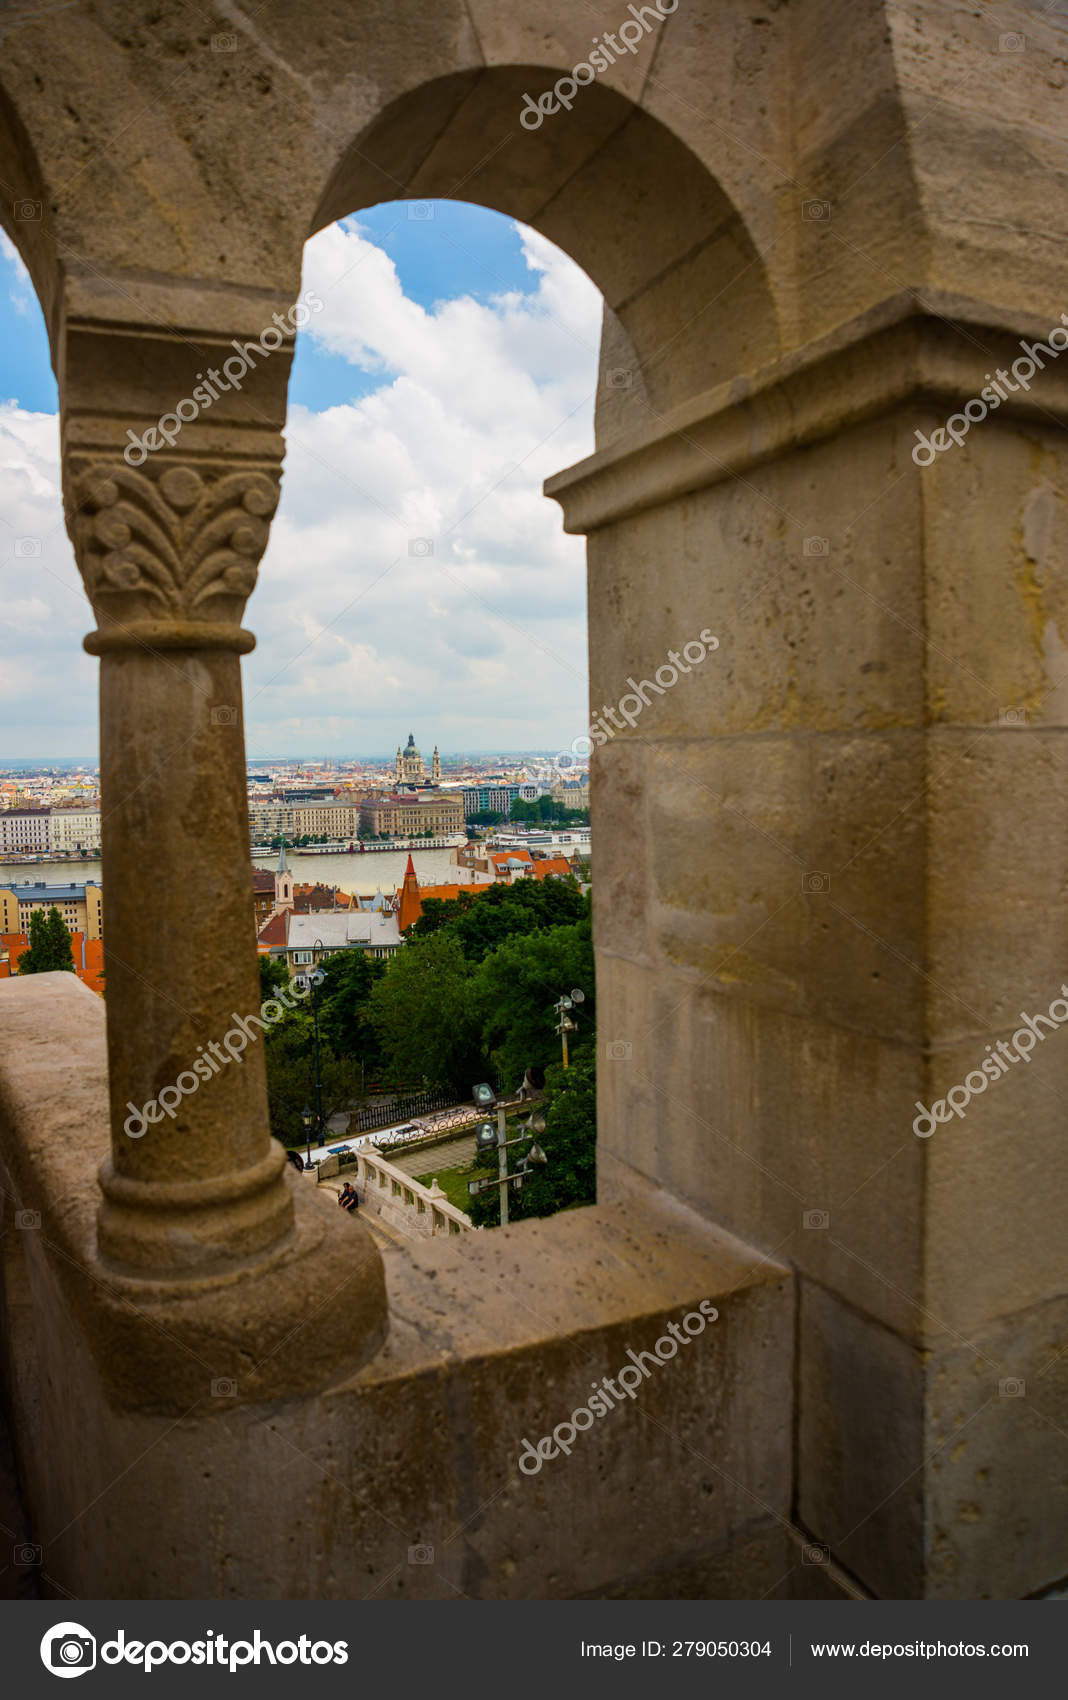 Budapest, Hungary: Beautiful landscape with a bridge on the Danube